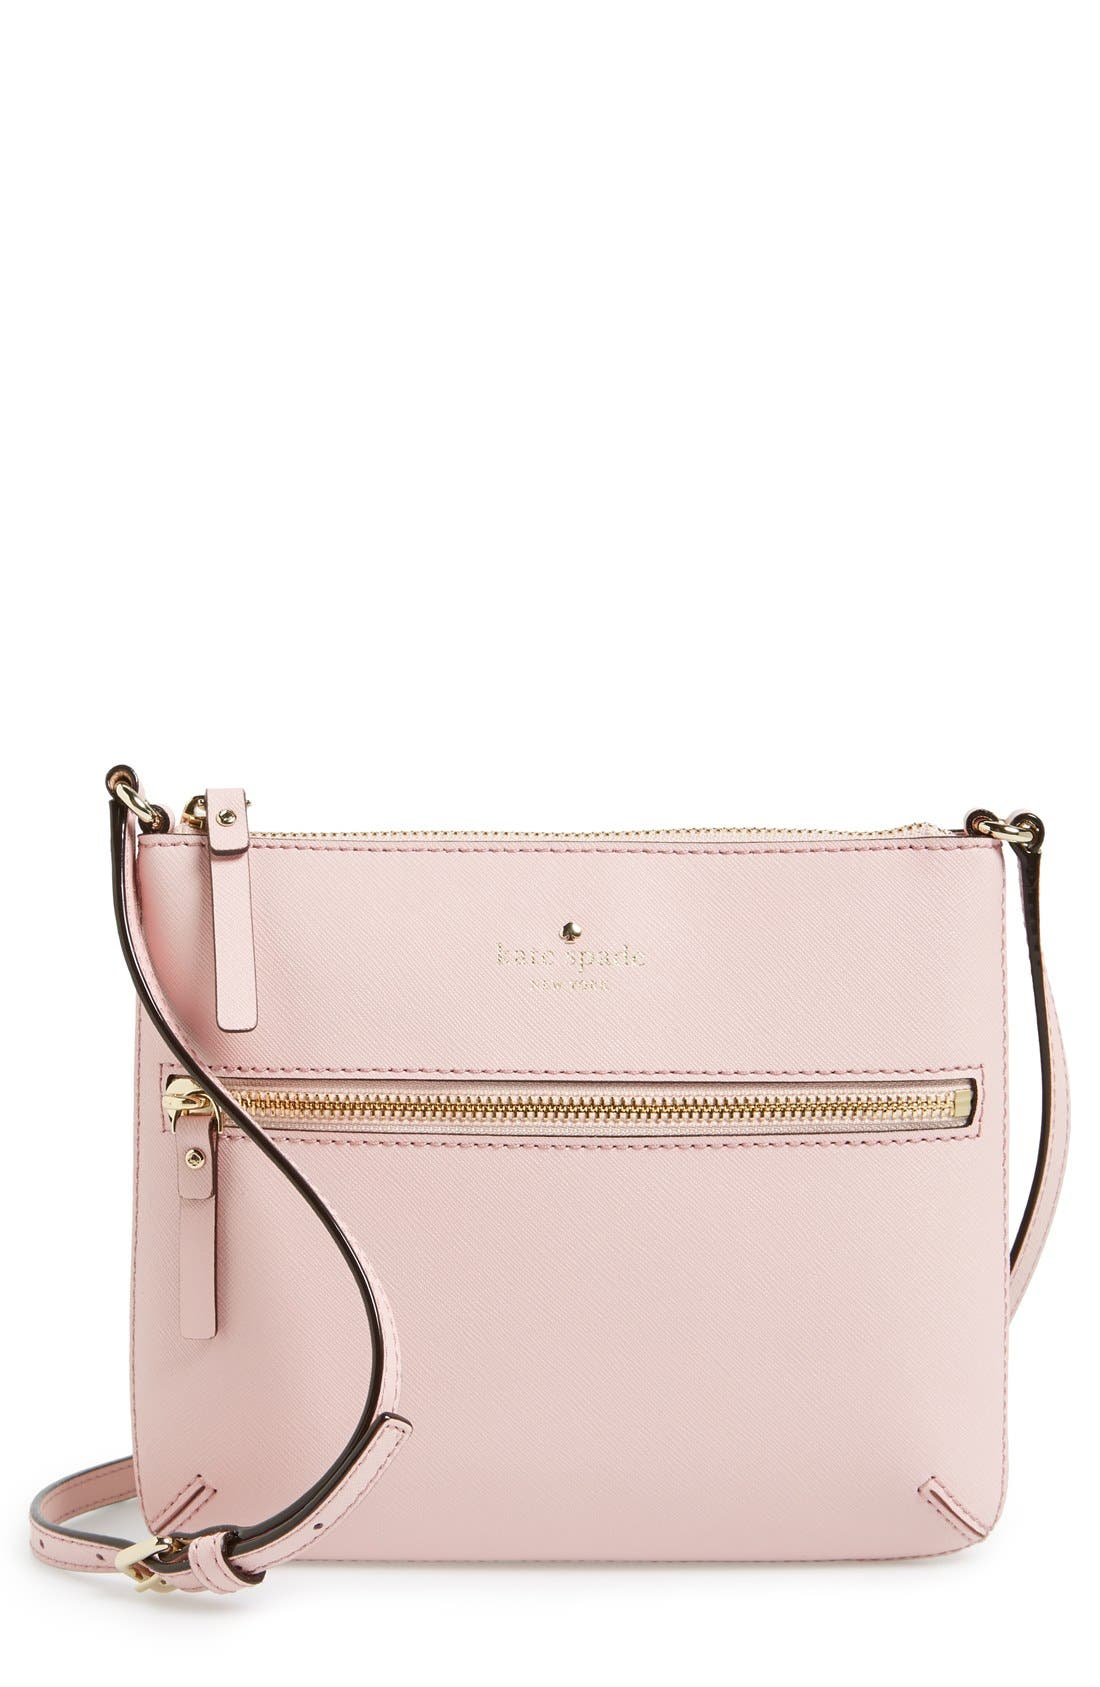 Alternate Image 1 Selected - kate spade new york 'cedar street - tenley' crossbody bag